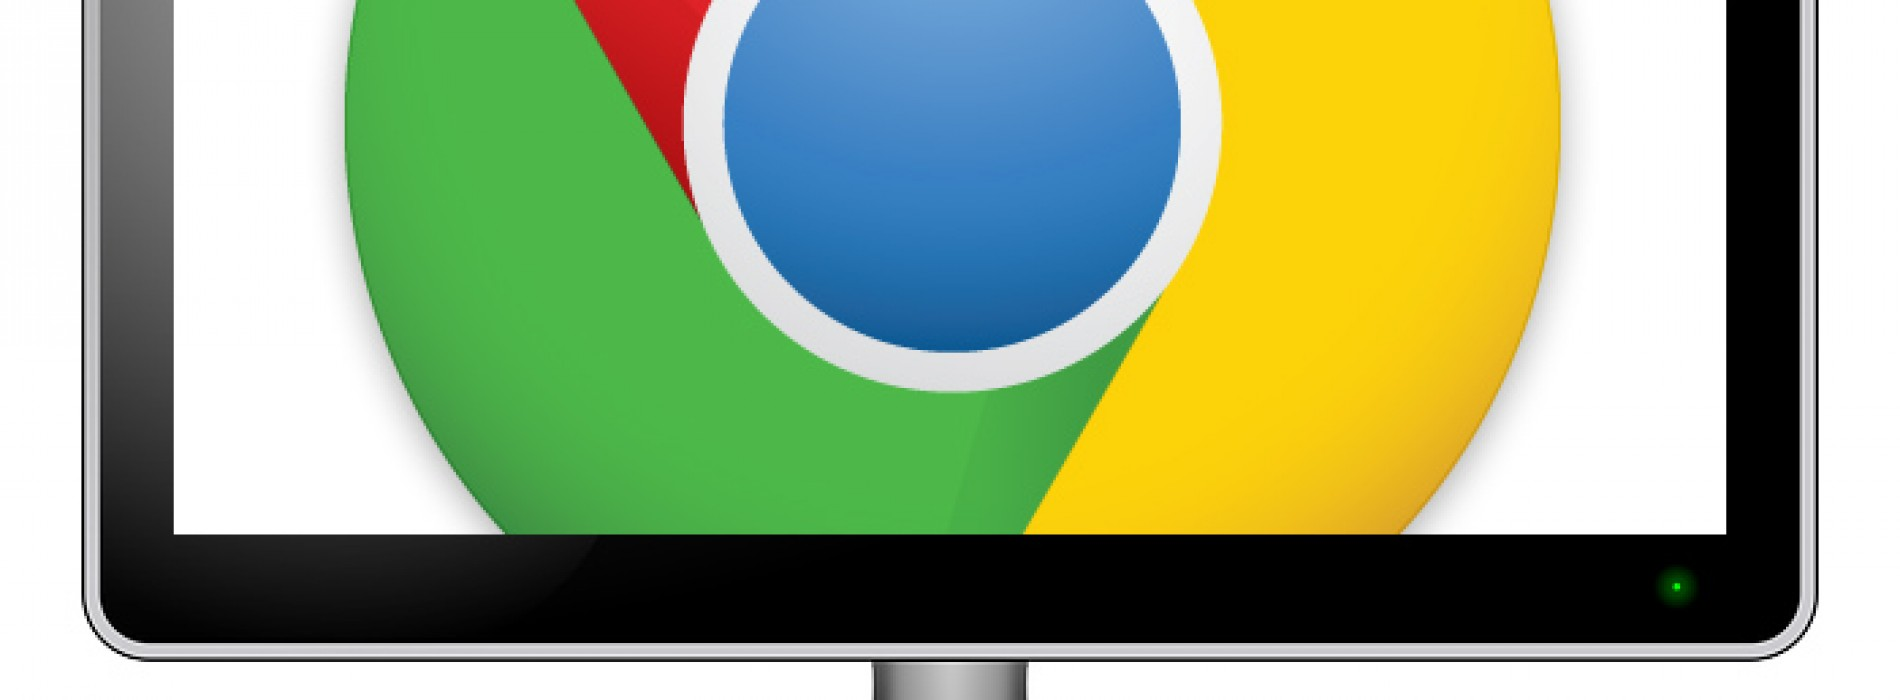 64-bit Chrome desktop browser now available in beta